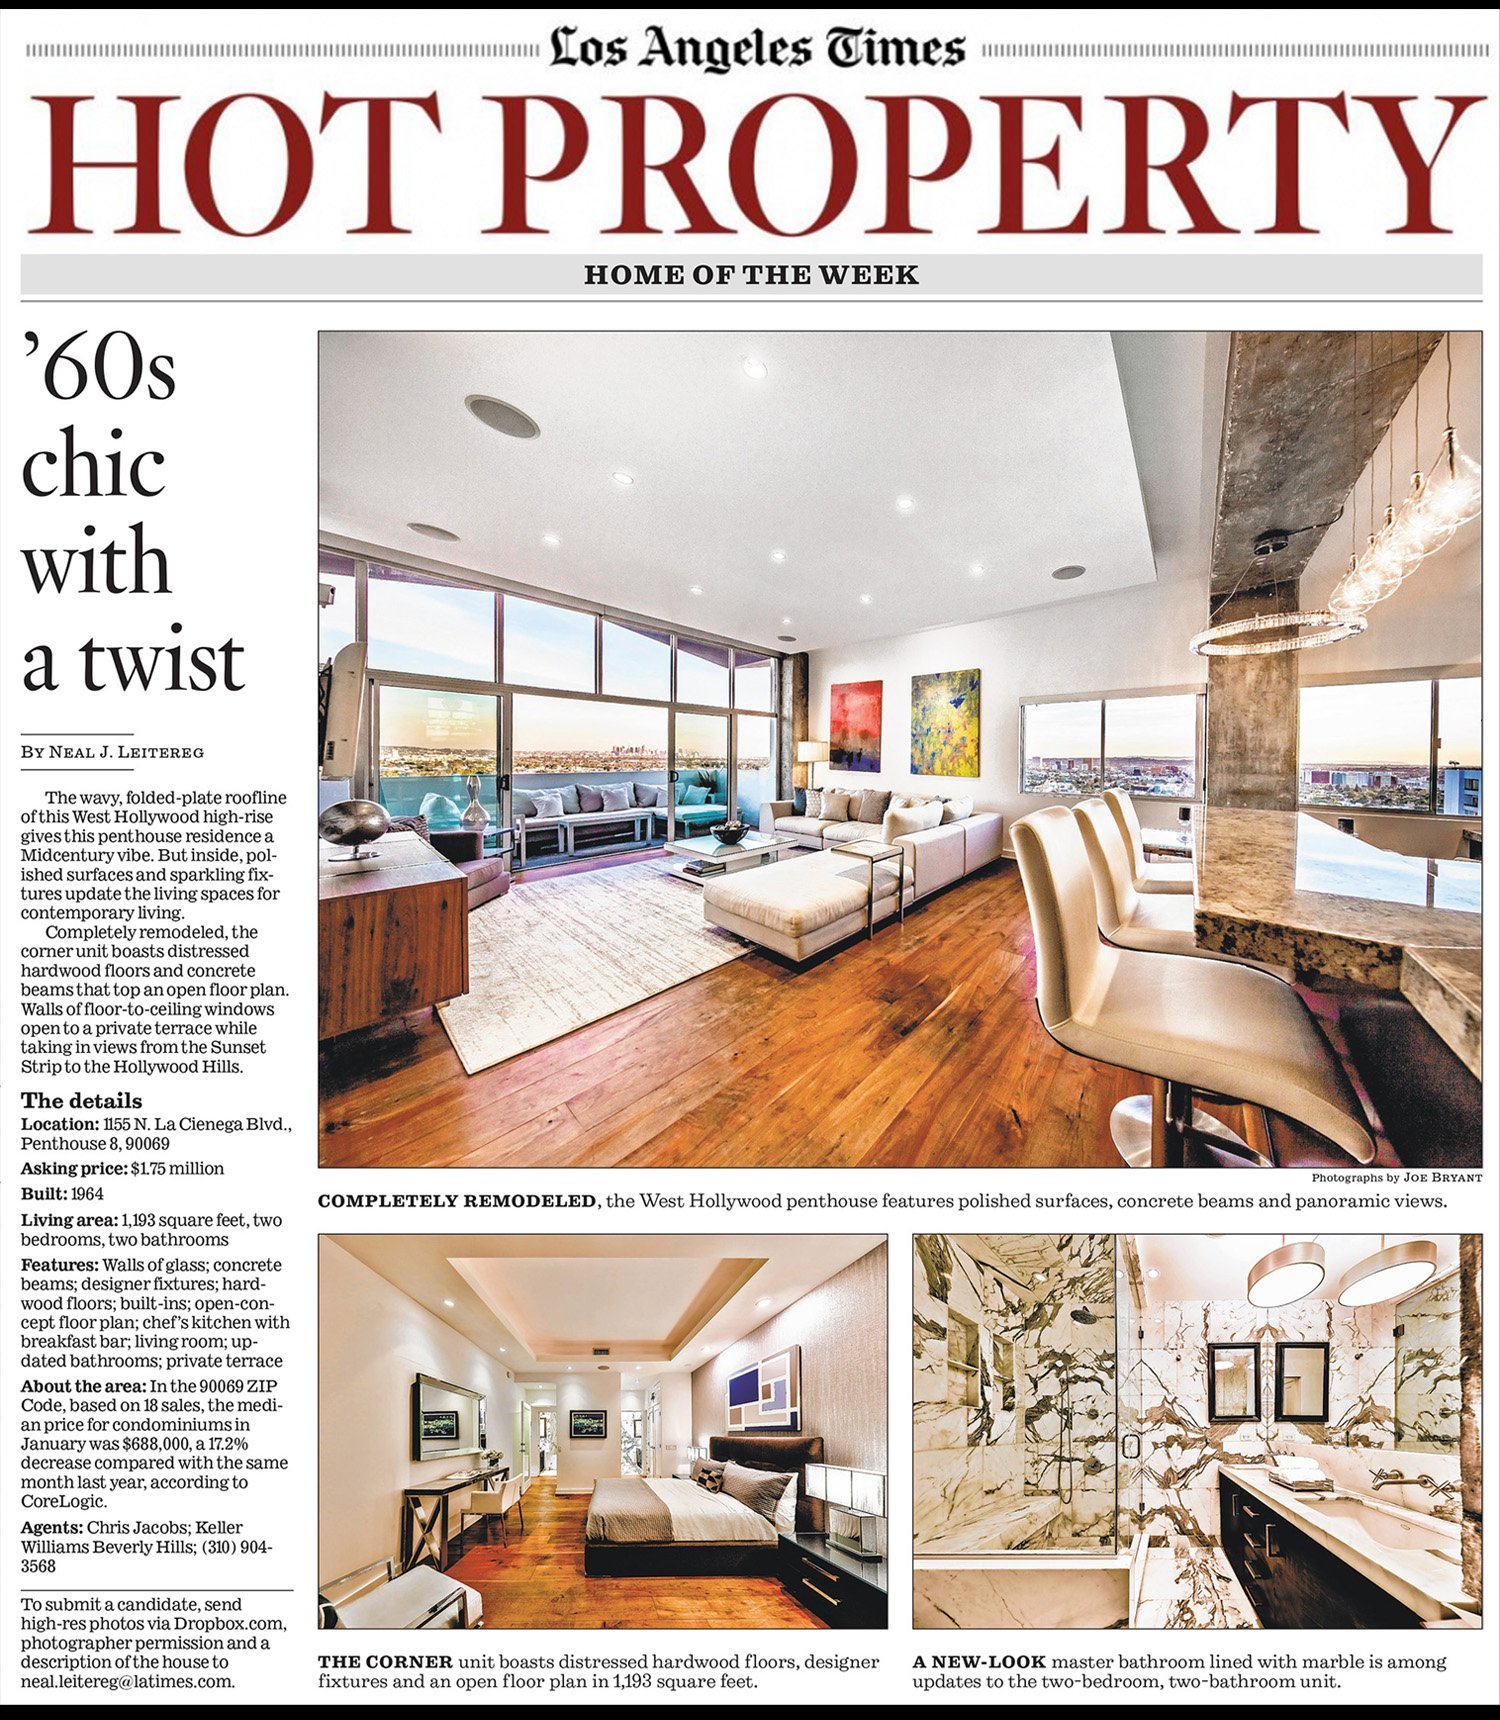 LA TIMES HOT PROPERTY